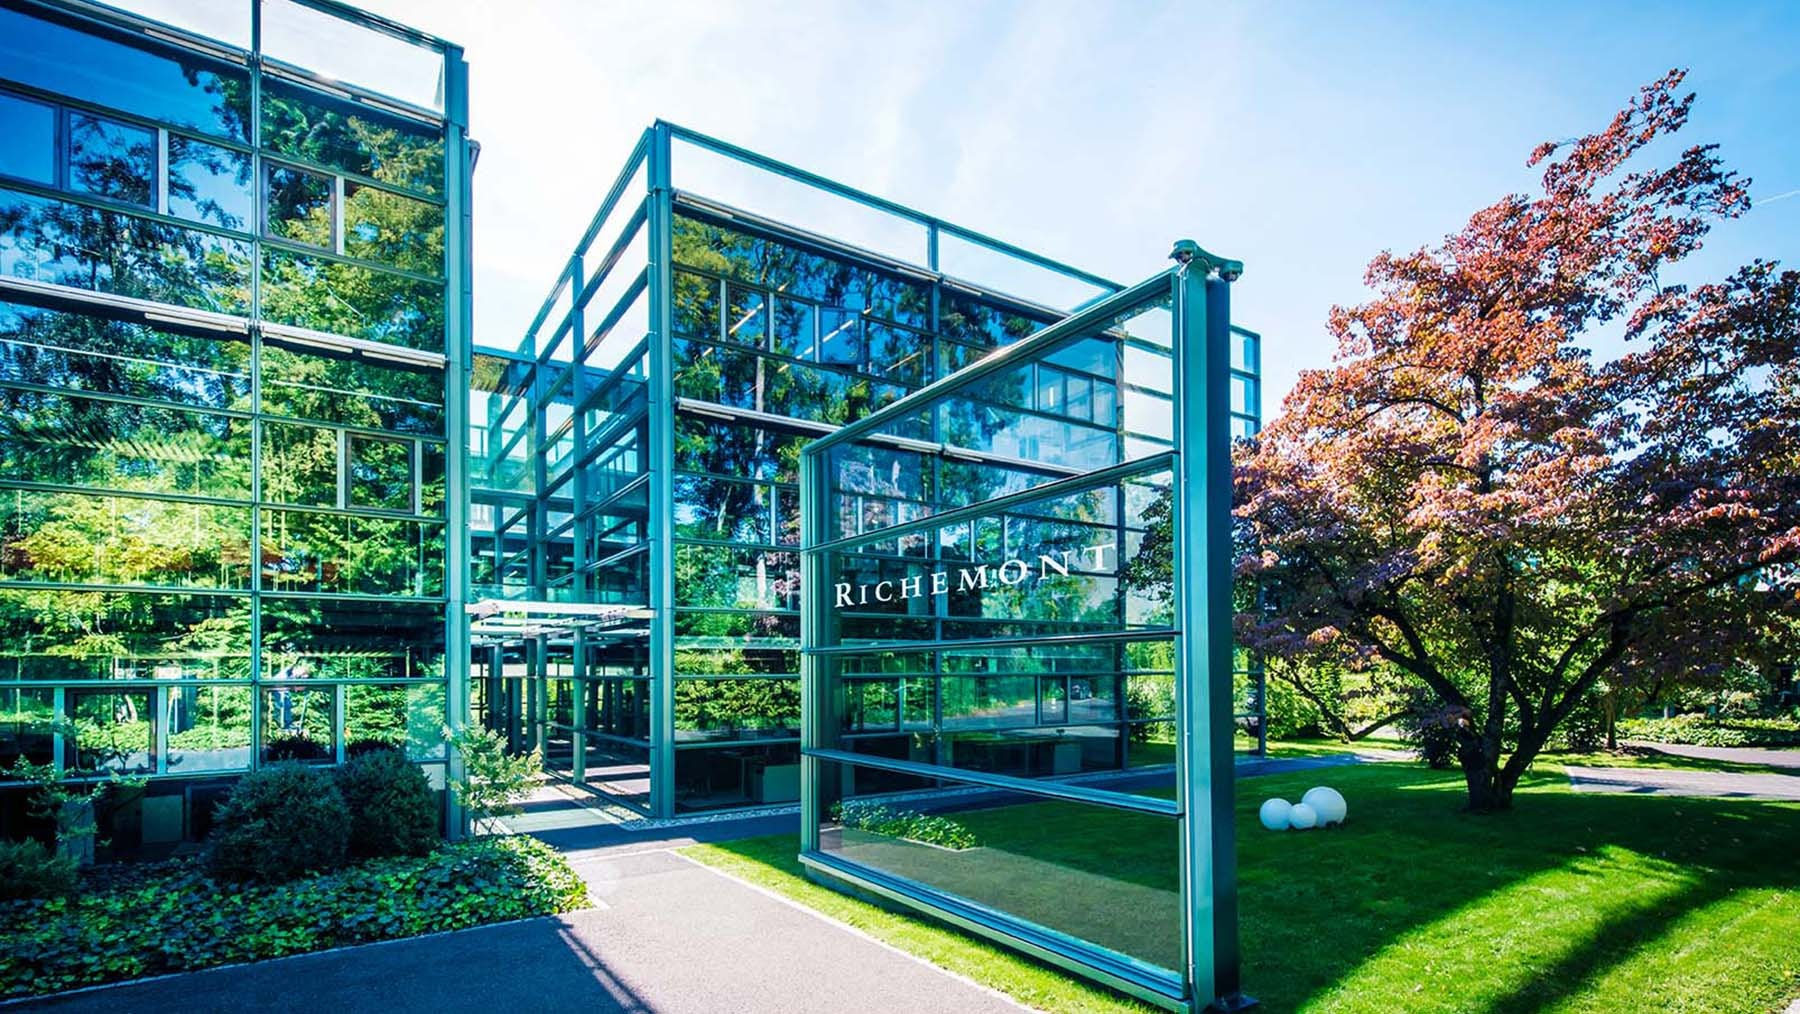 Richemont headquarters in Geneva, Switzerland | Source: Richemont